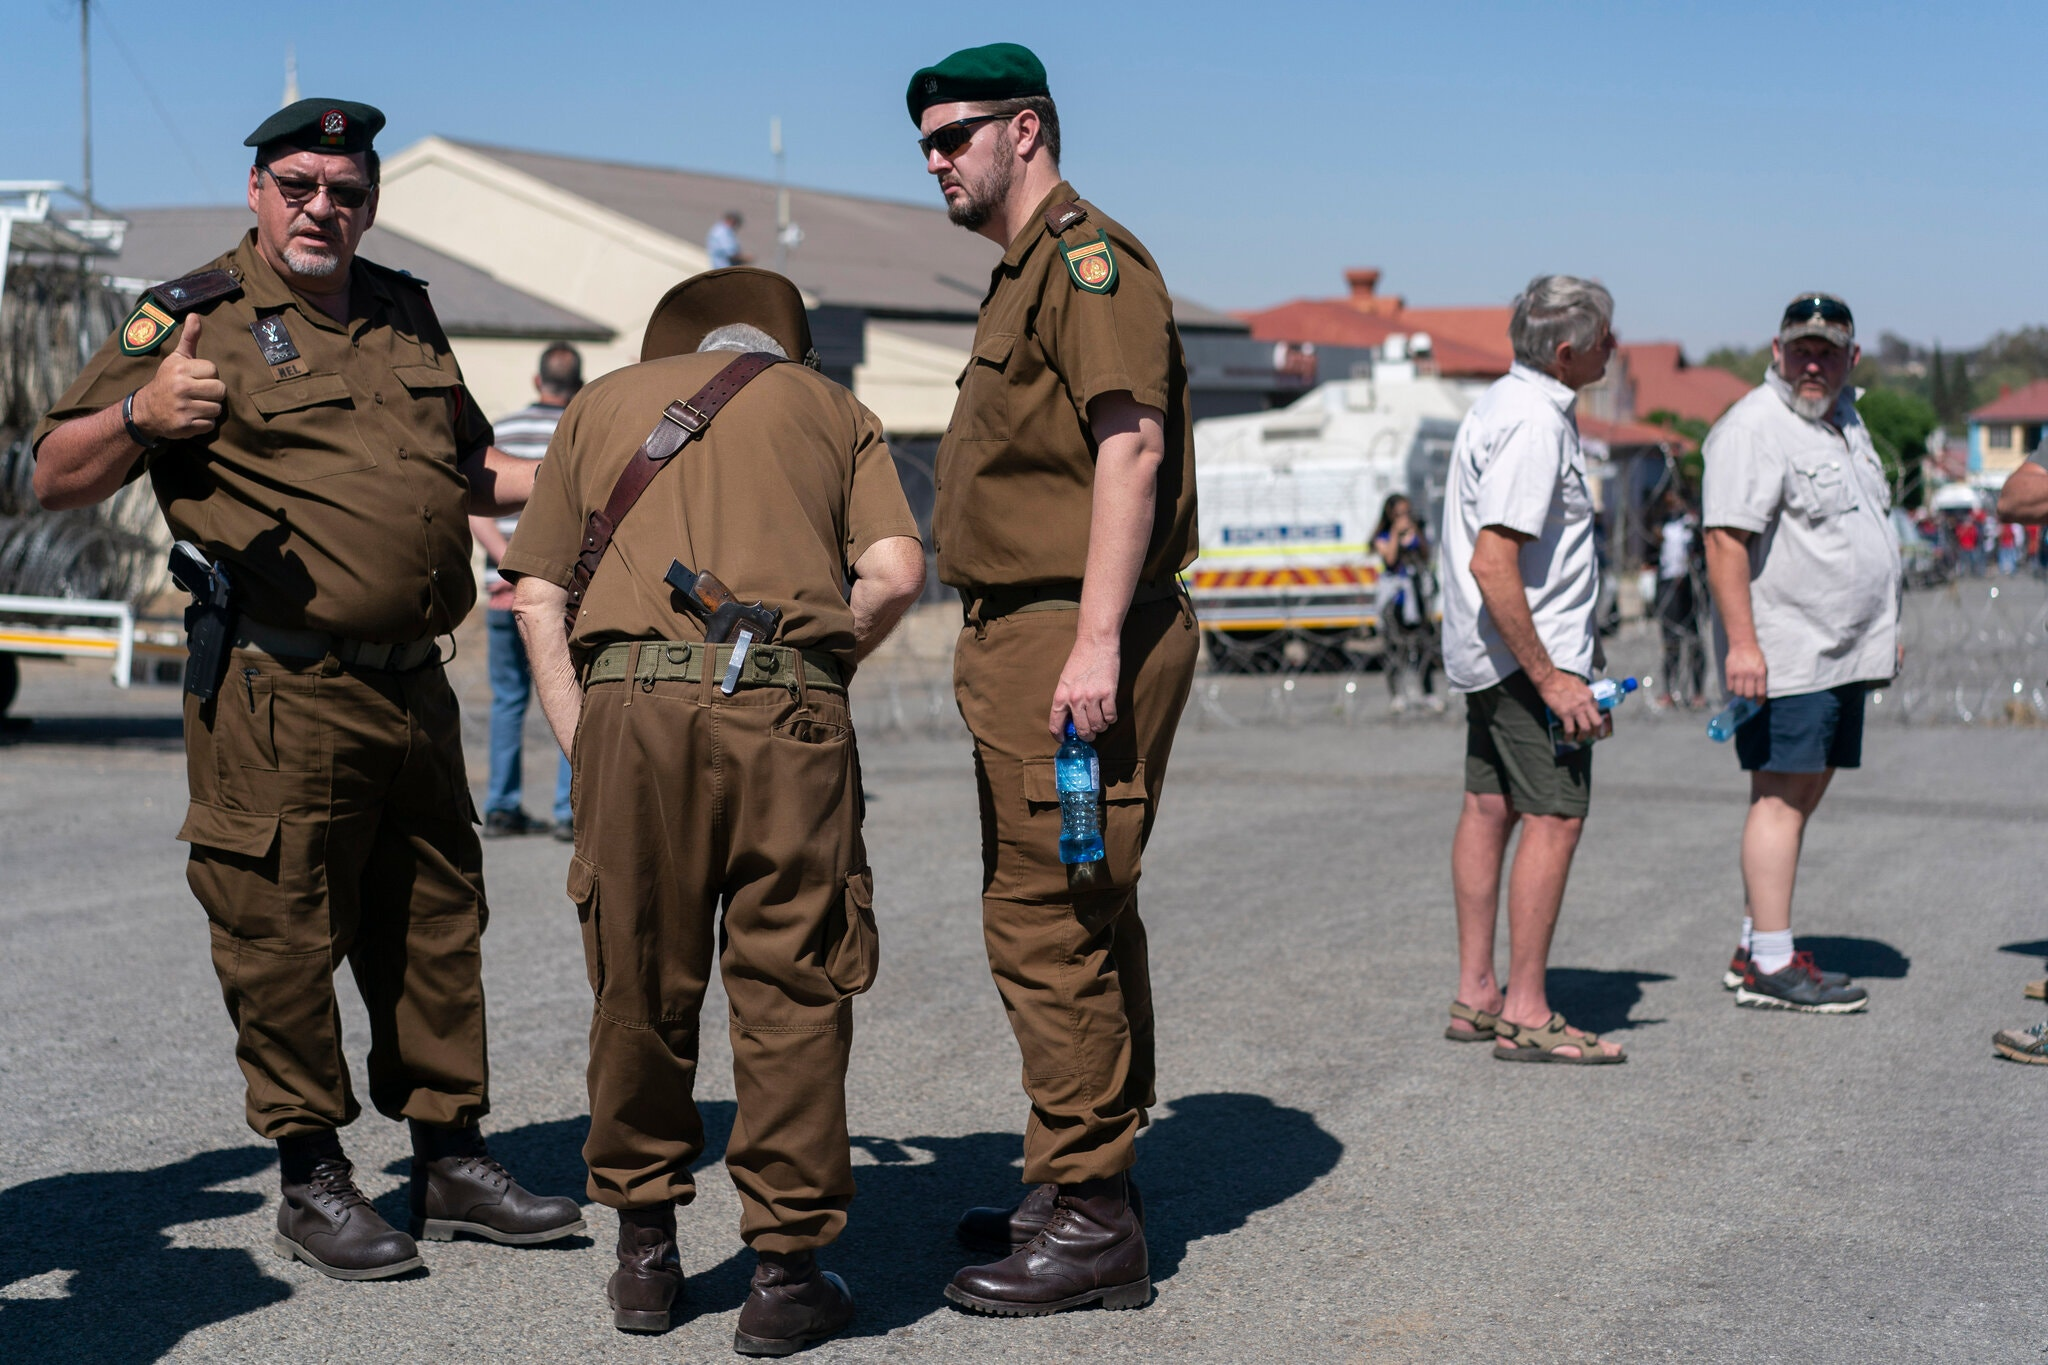 Farmers wearing old South African Army uniforms outside the court.Credit...Joao Silva/The New York Times